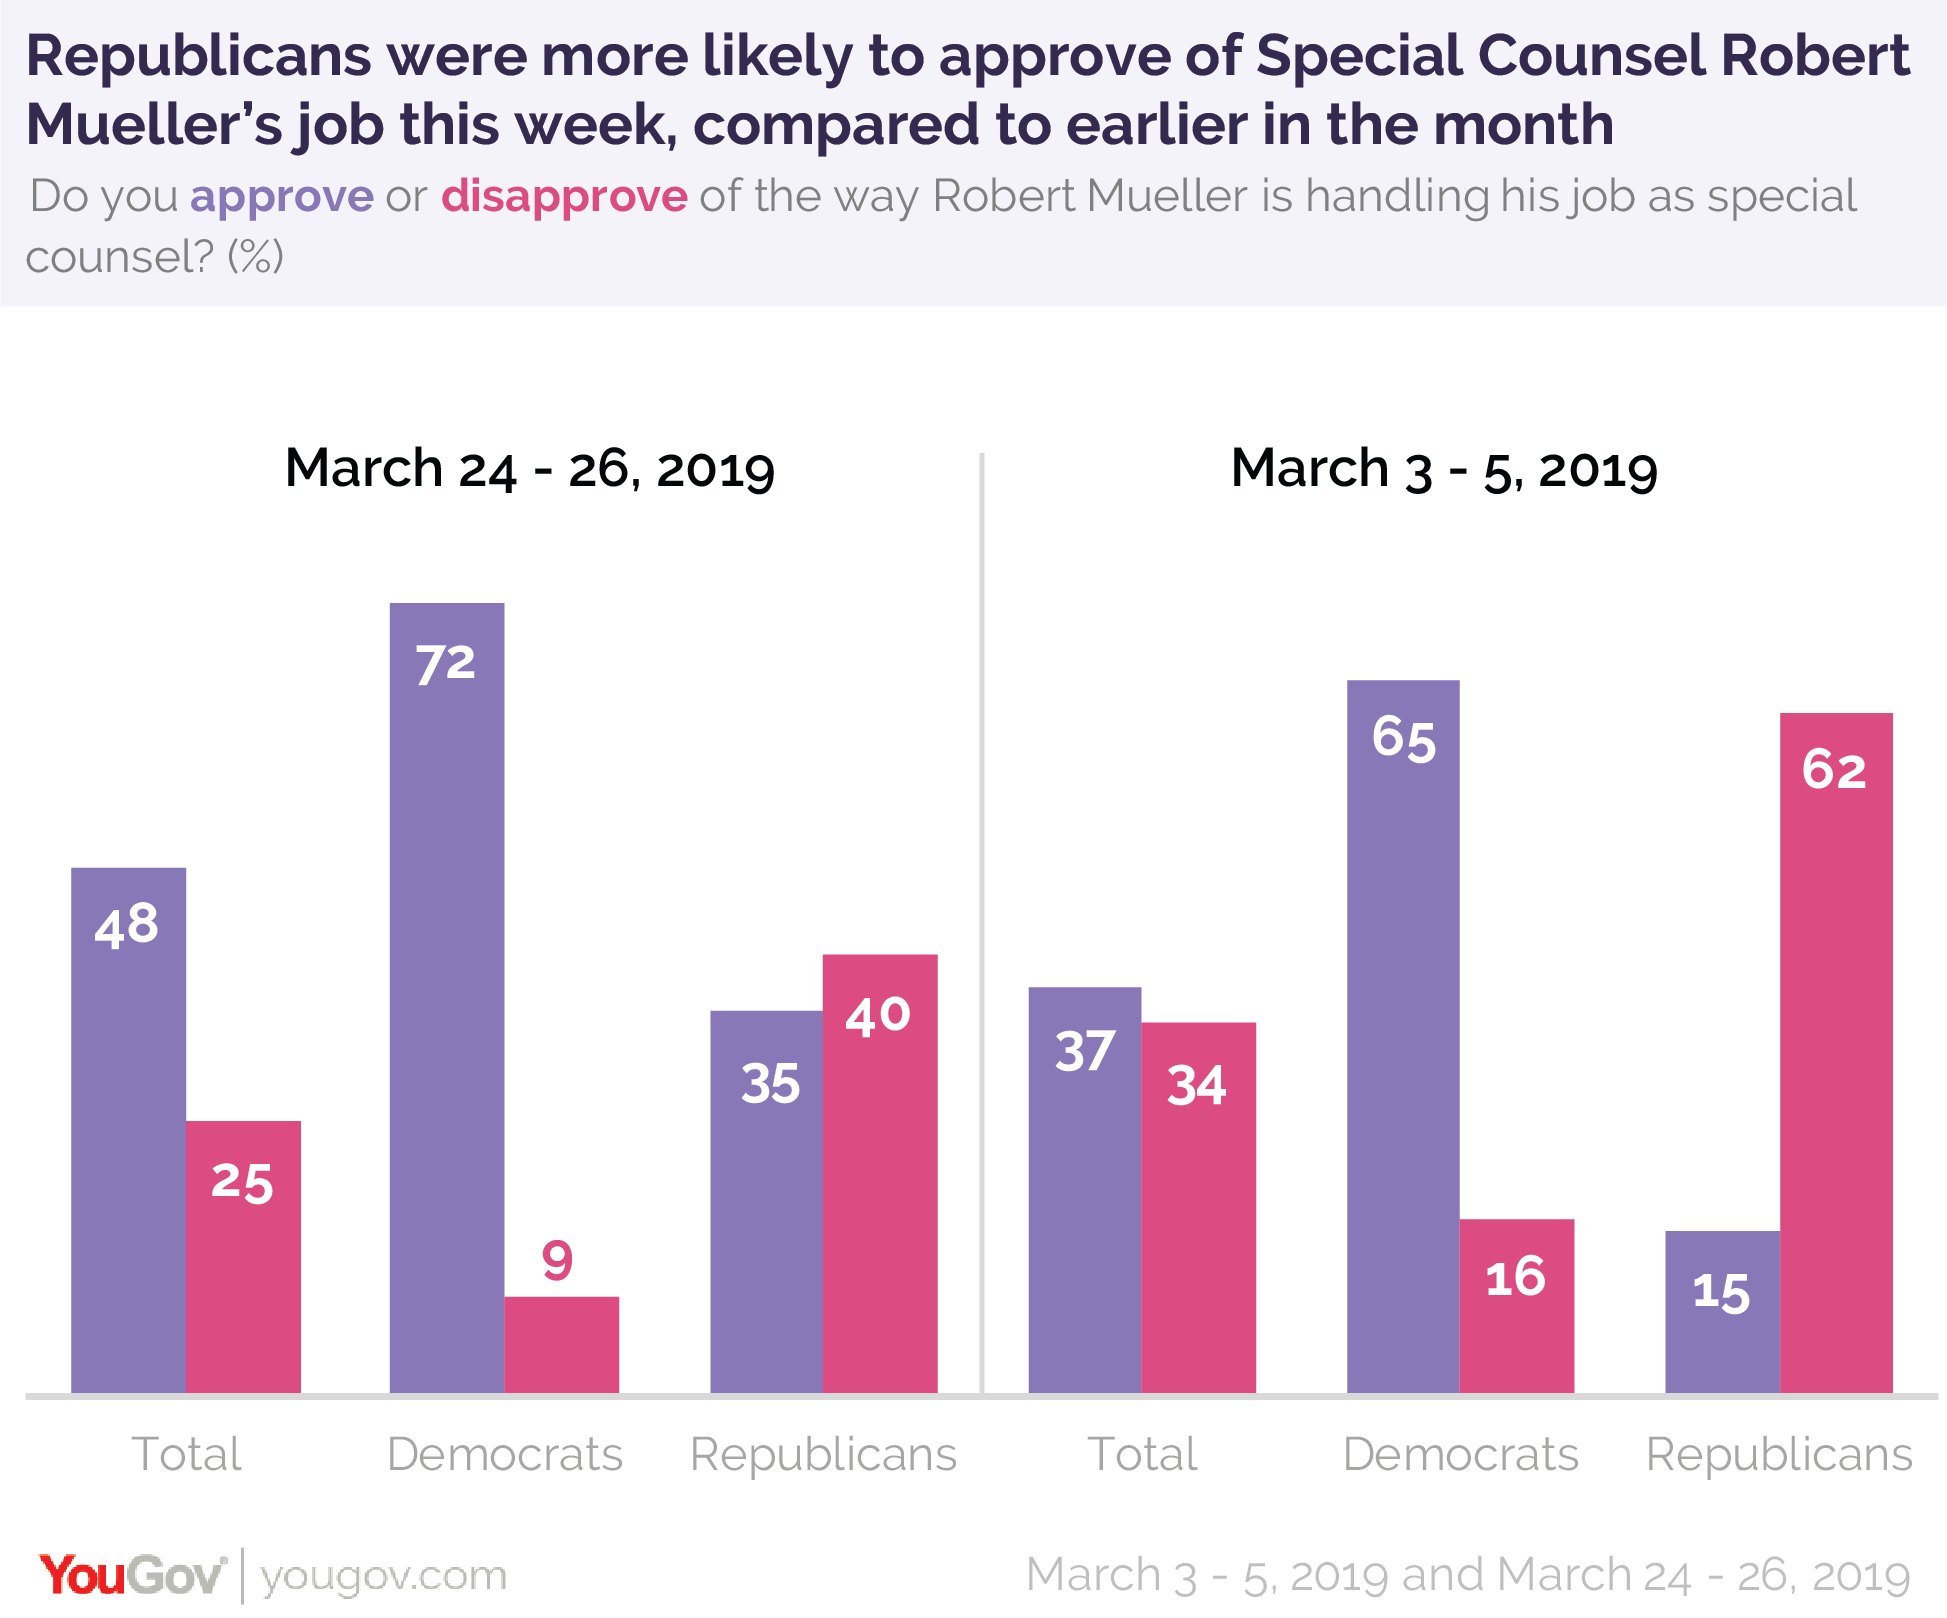 Republicans were more likely to approve of Special Counsel Robert Mueller's job this week, compared to earlier in the month